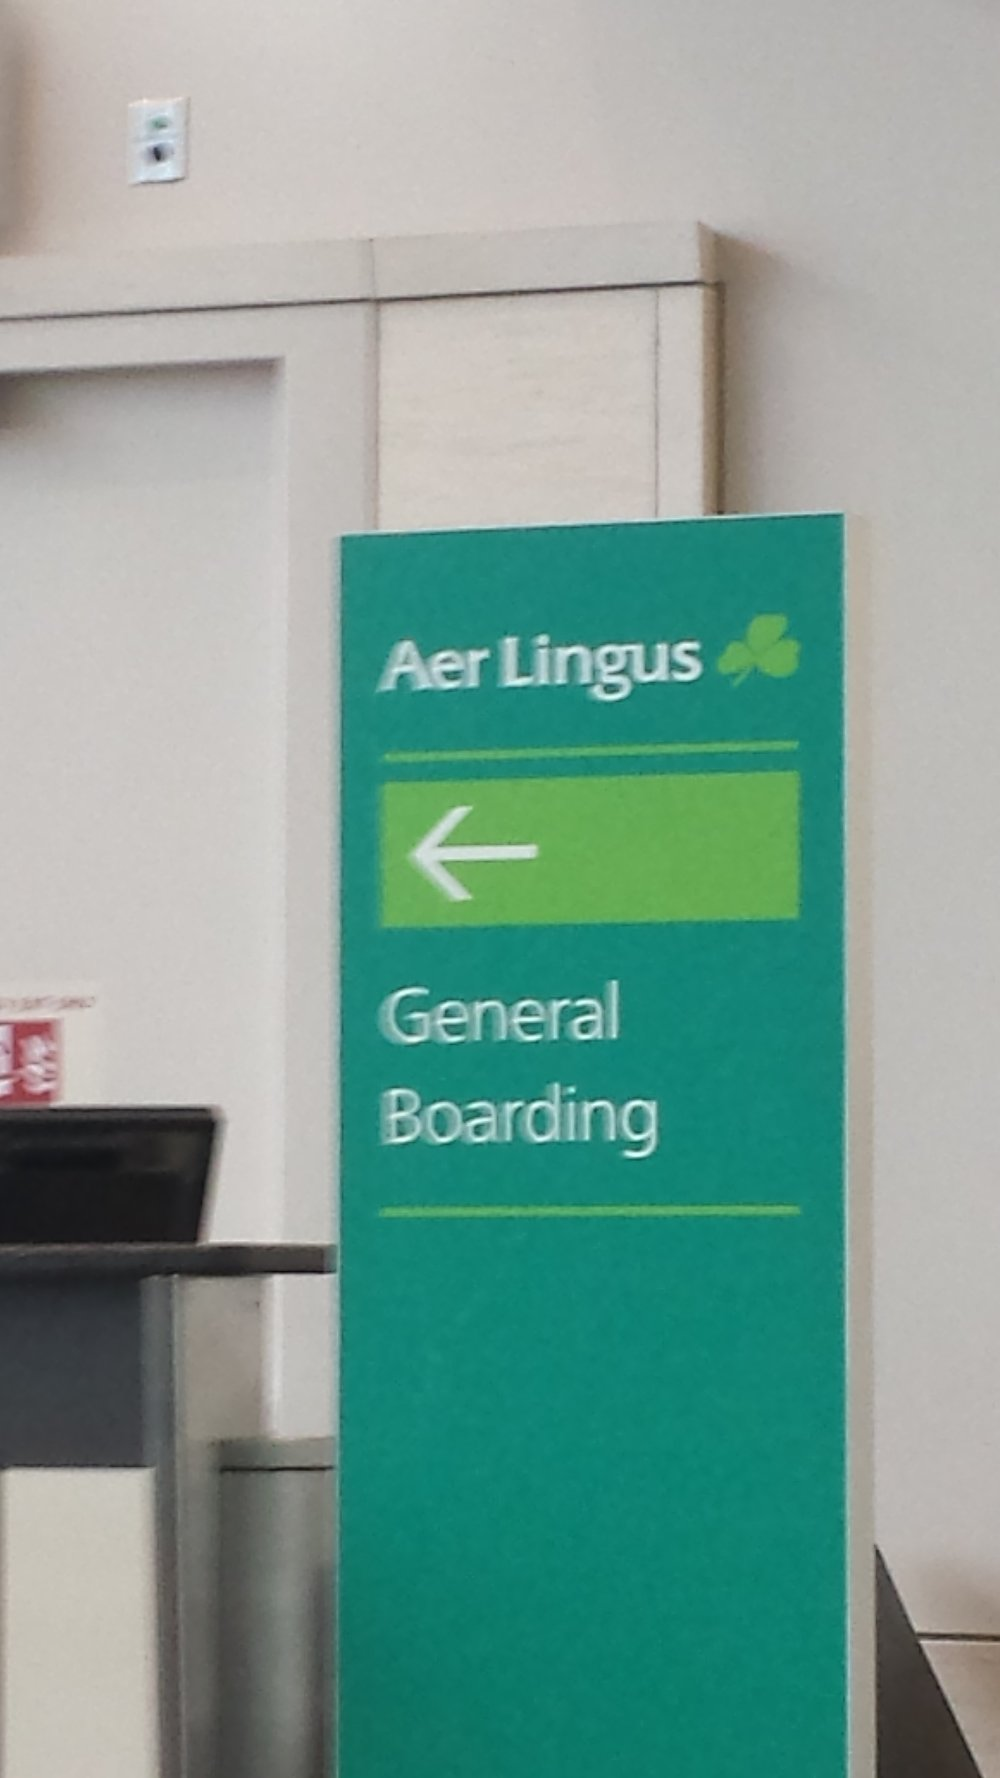 Aer Lingus provided great service!